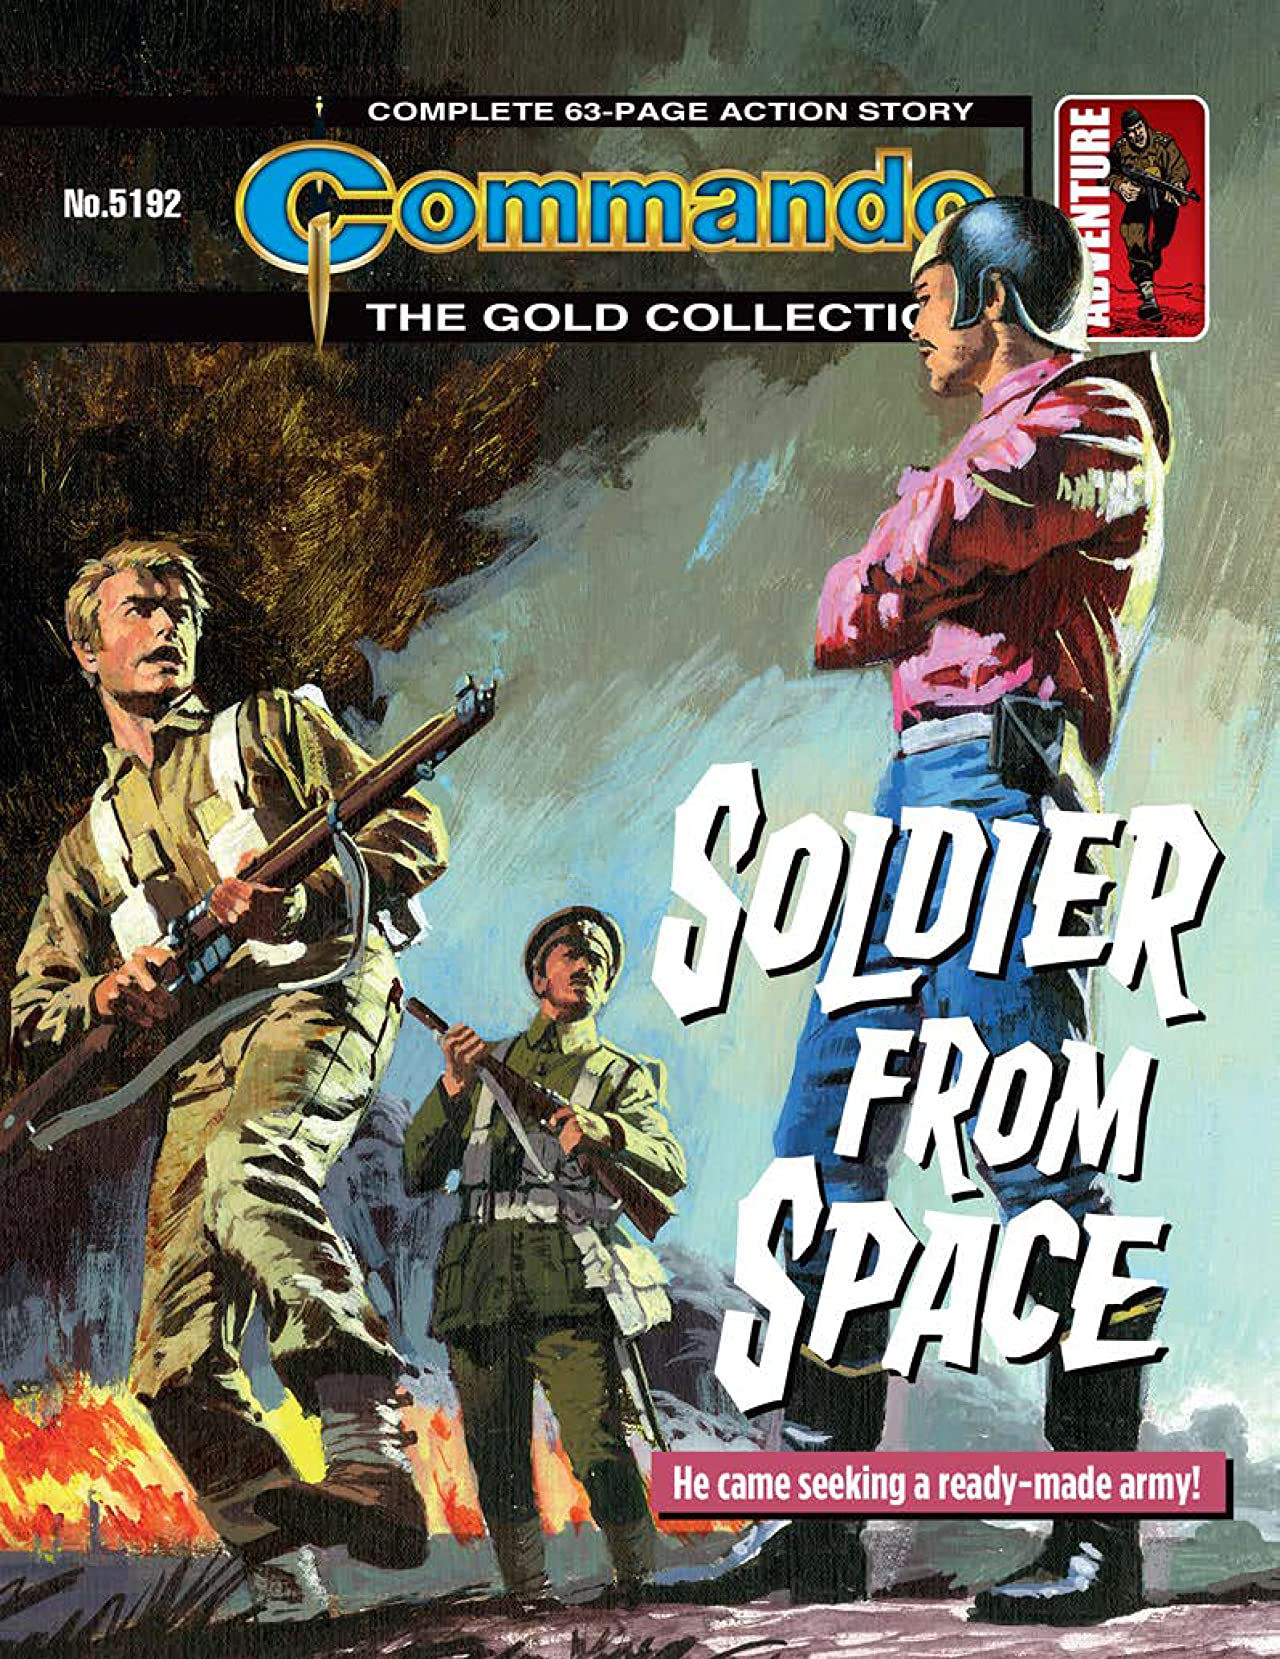 Commando #5192: Soldier From Space